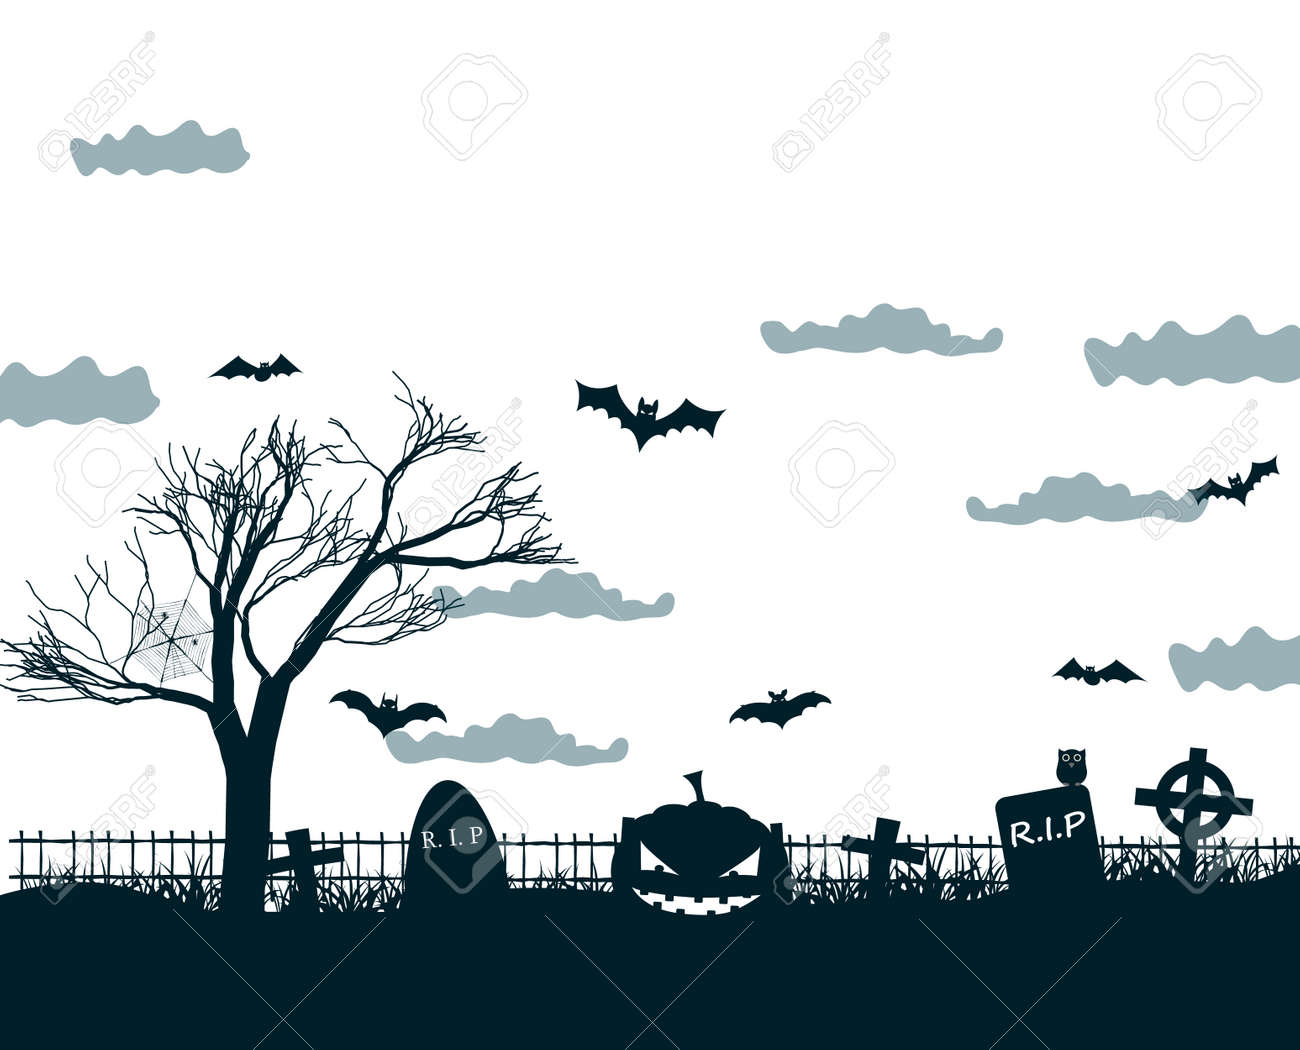 Halloween night background poster in black, white, grey colors with dark cemetery crosses, dead tree, smiling pumpkins and bats at lunar sky vector illustration - 167002900